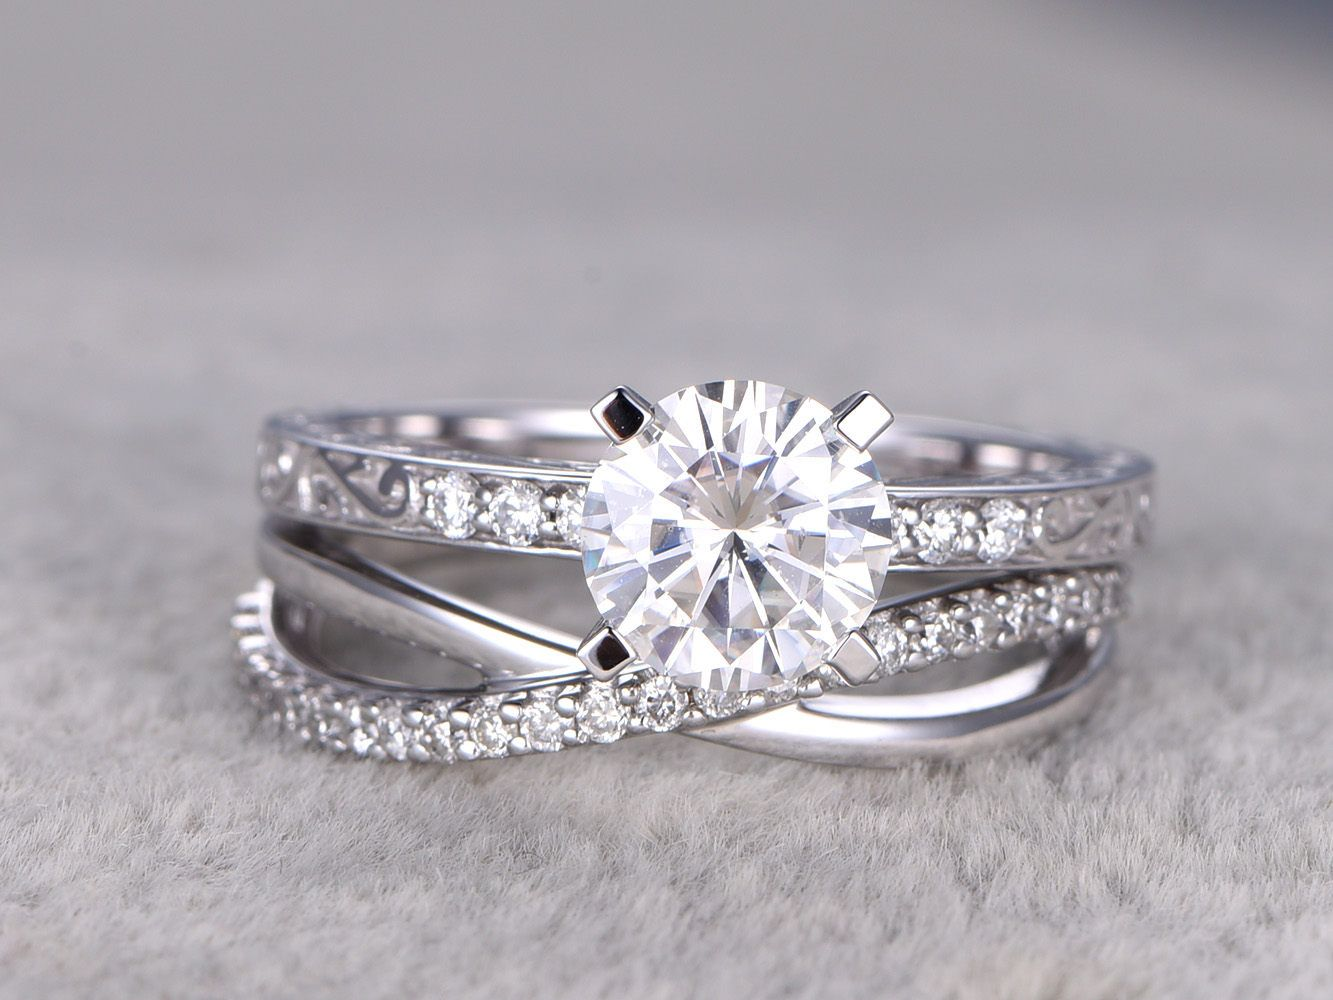 cross wedding bands 2 Moissanite Bridal Set Solitaire Engagement ring Criss Cross Wedding Band Diamond Filgree Floral style 14k White Gold 7mm Round Cut